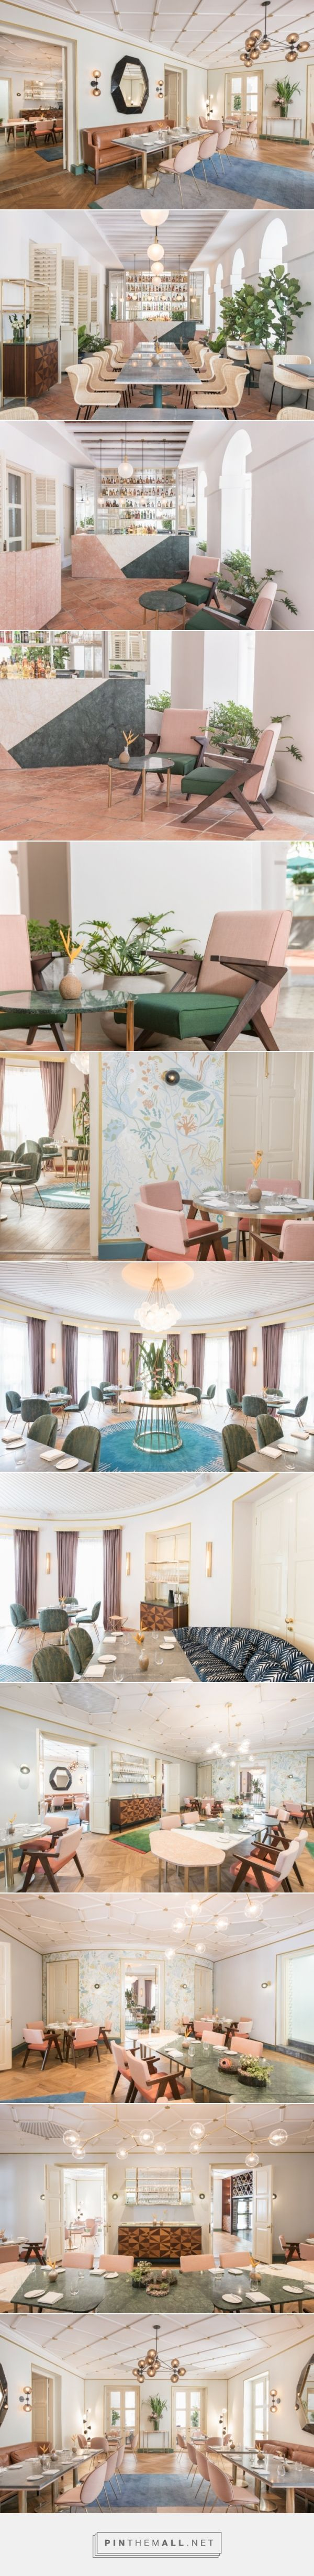 Whitegrass restaurant by Takenouchi Webb, Singapore » Retail Design Blog... - a grouped images picture - Pin Them All